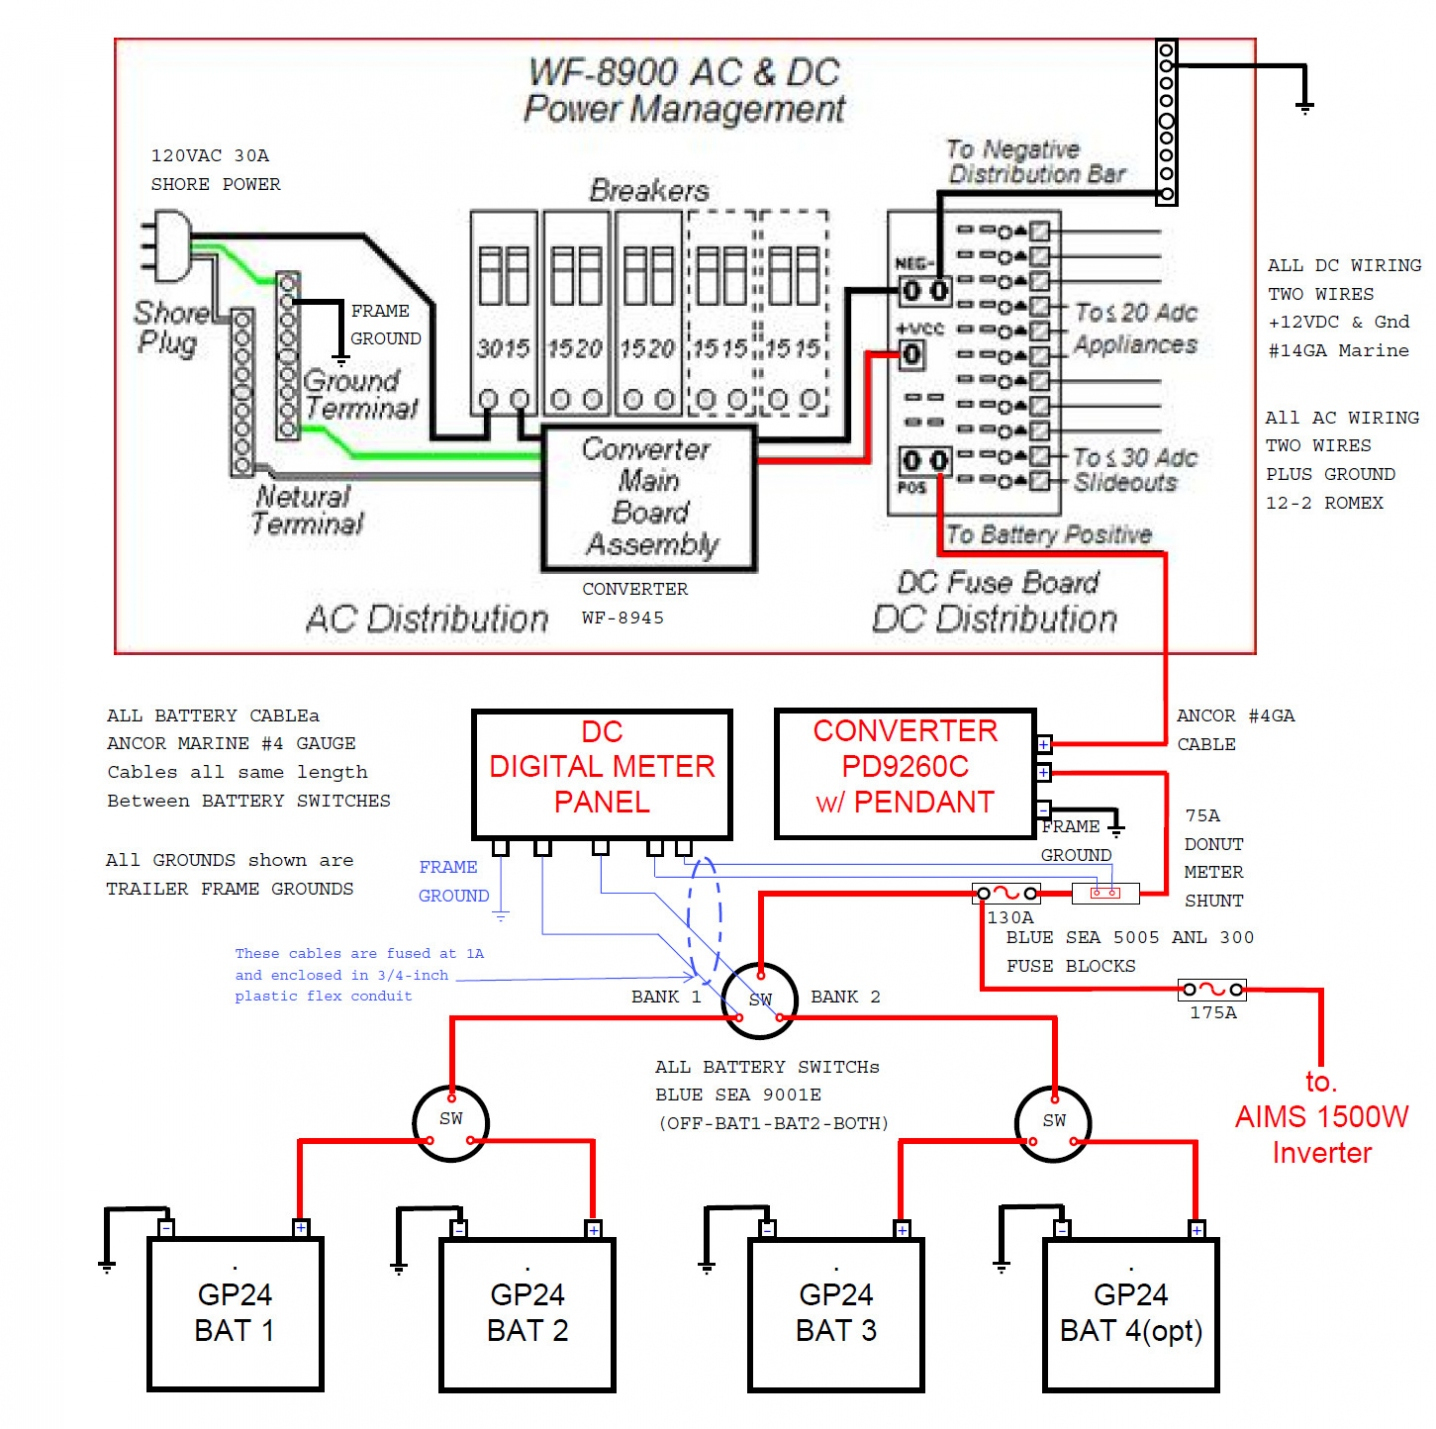 Rv Convertor Wiring Diagram | Wiring Diagram - Wiring Diagram For Travel Trailer 120V